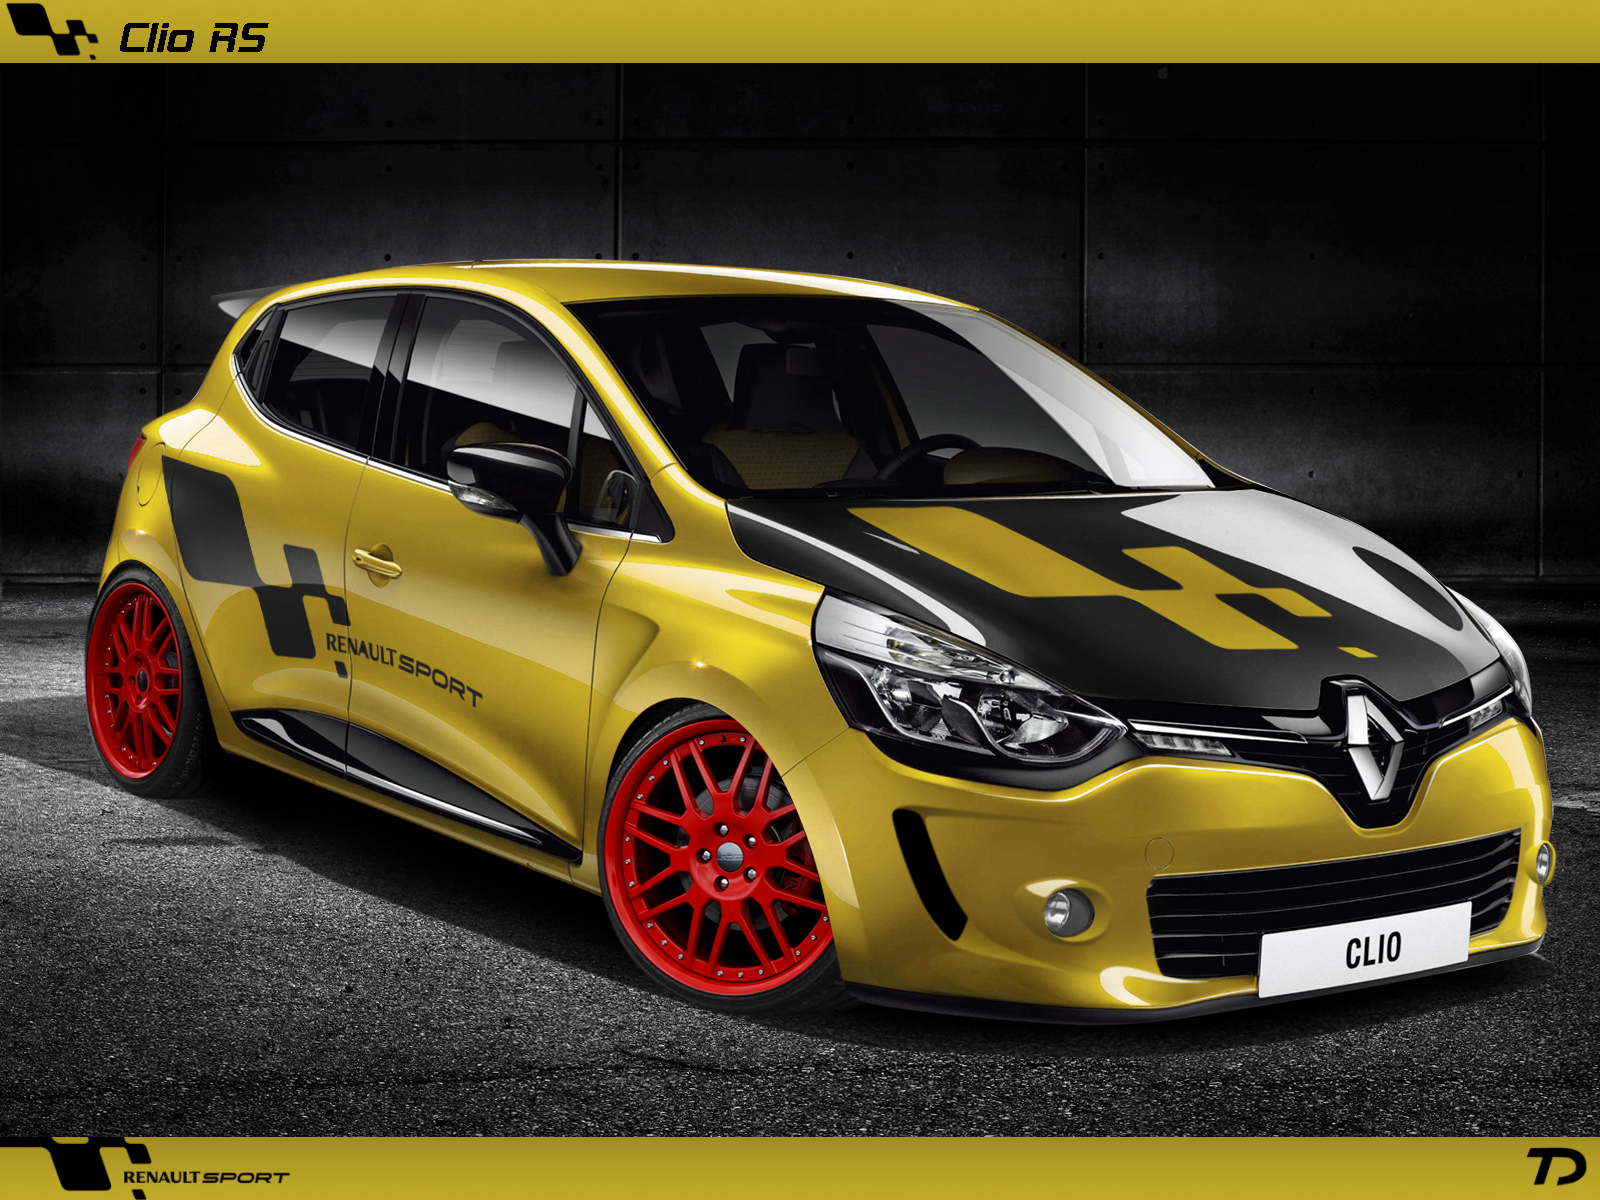 renault clio tuning renault clio tuning. Black Bedroom Furniture Sets. Home Design Ideas